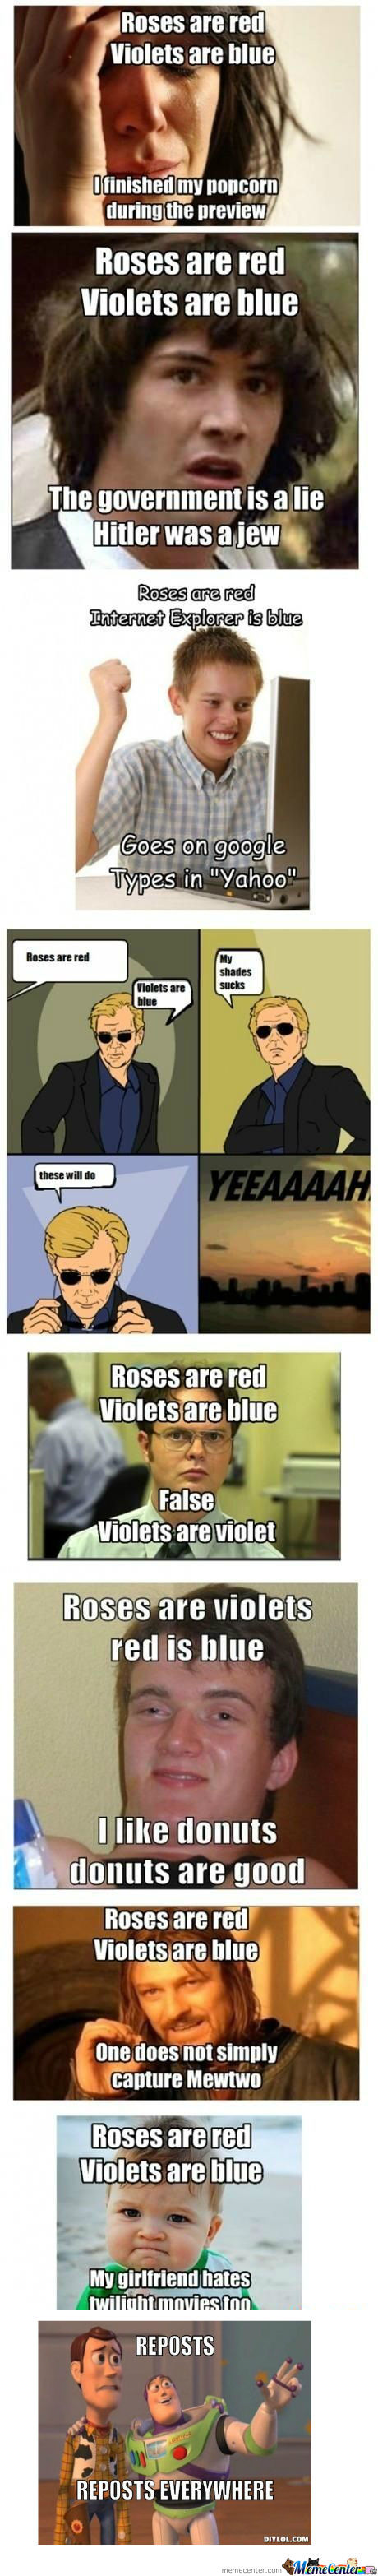 [RMX] Roses Are Red...